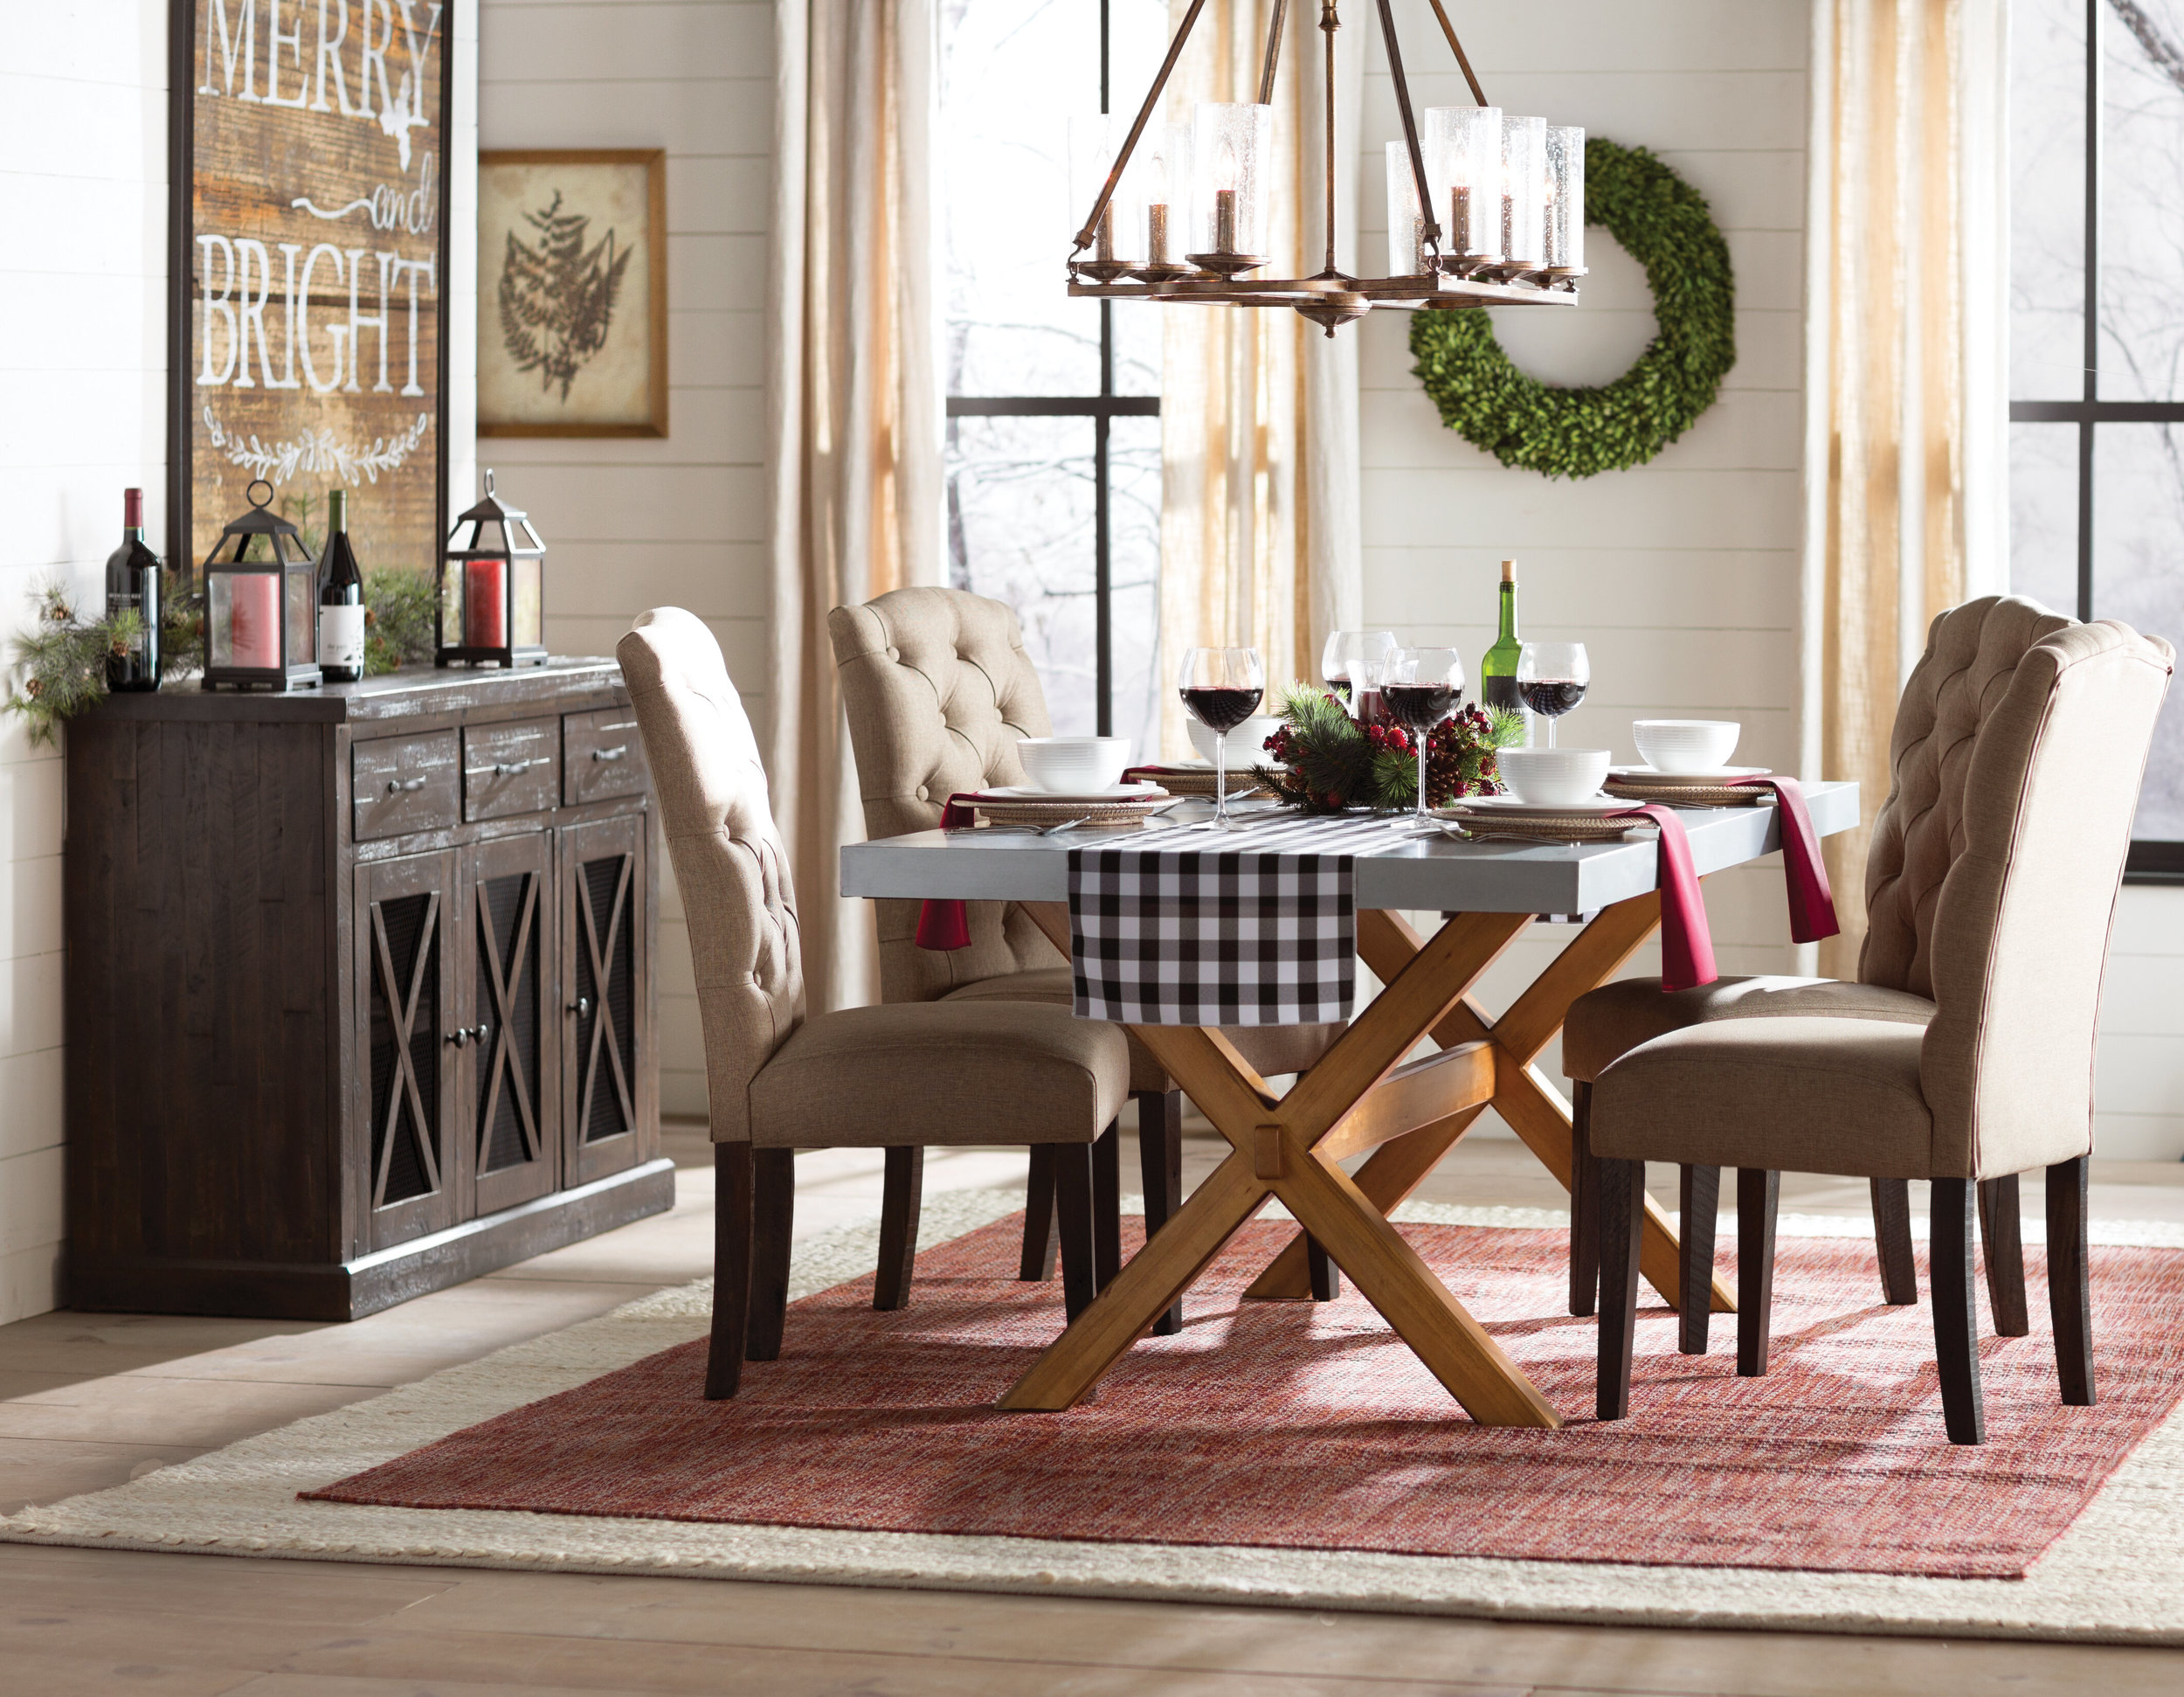 dining-room-design-guide